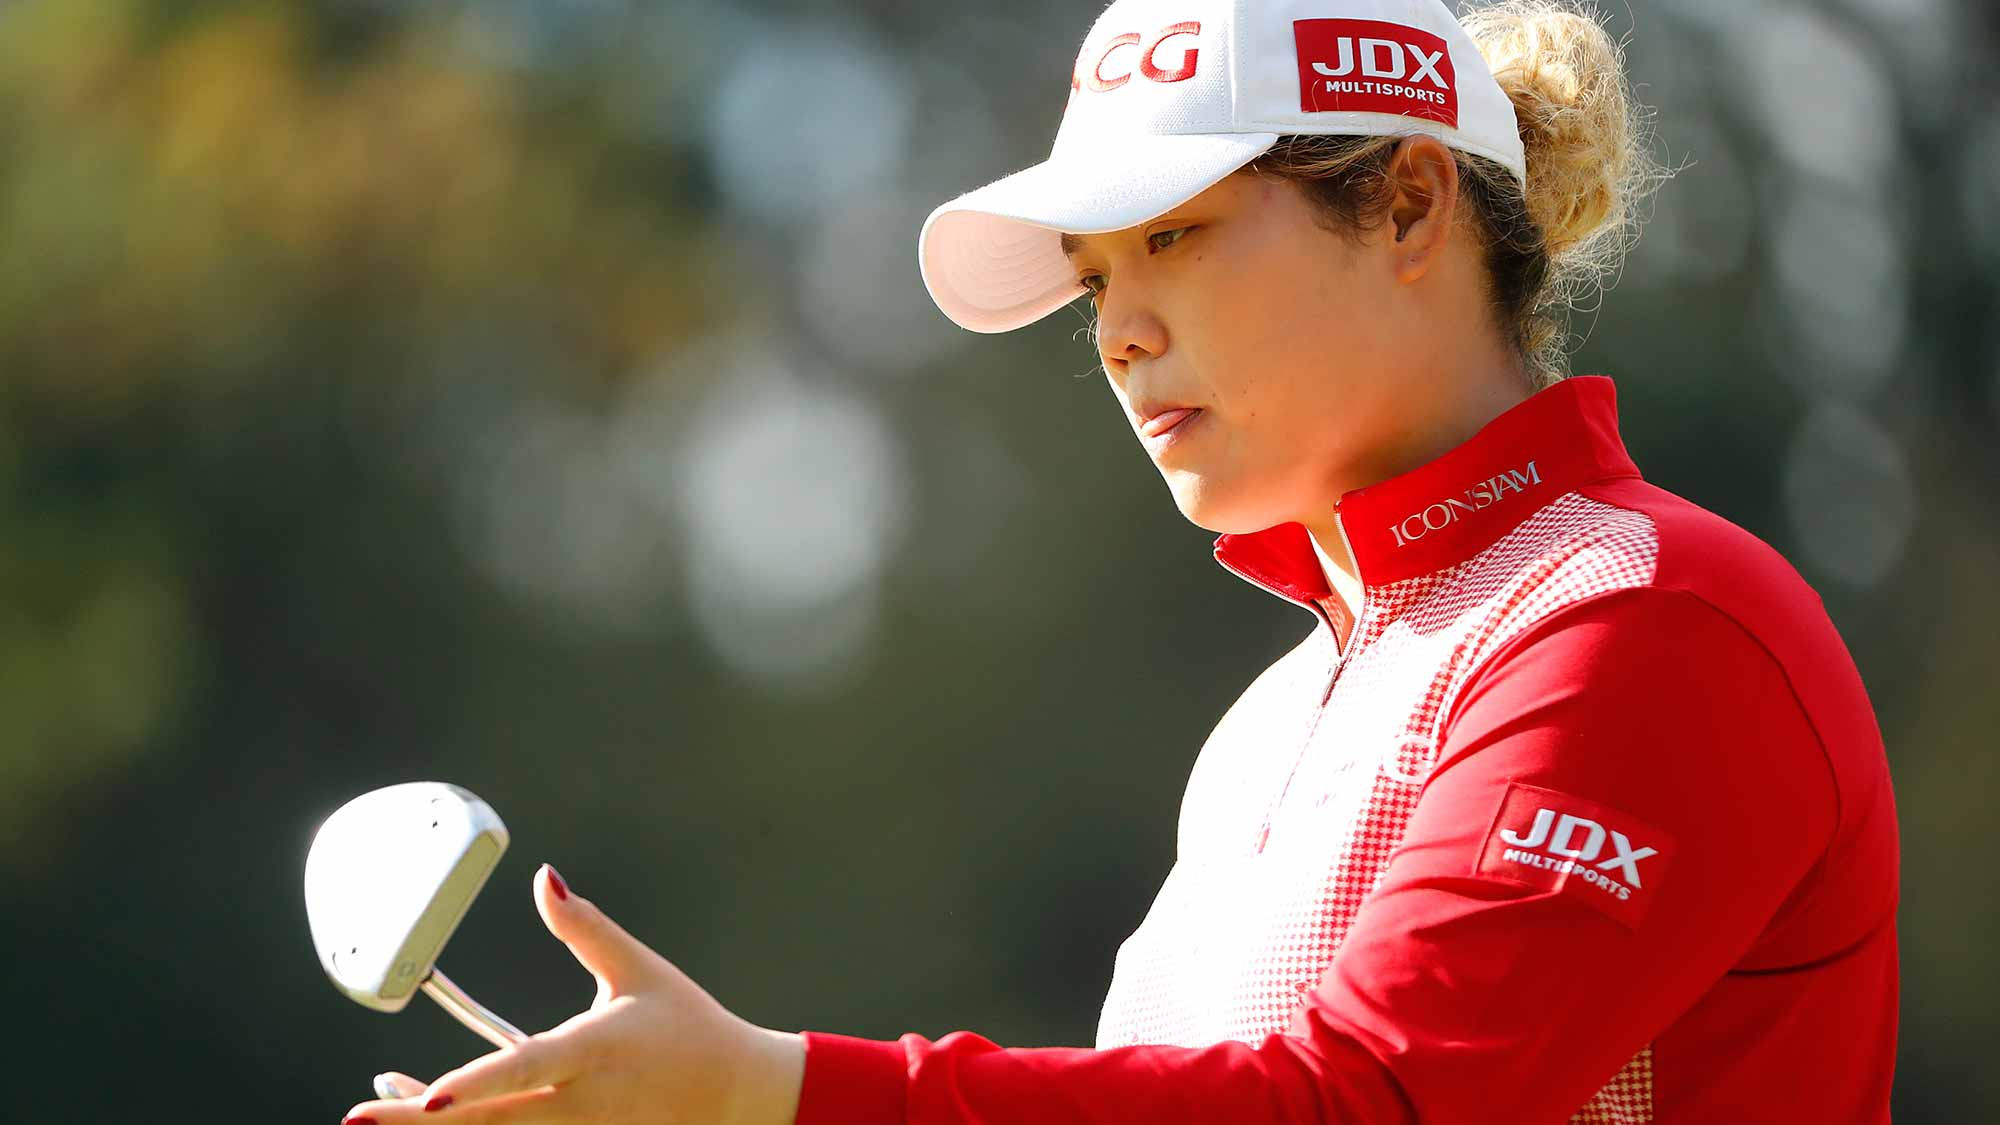 Ariya Jutanugarn of Thailand prepares to putt on the sixth green during the second round of the TOTO Japan Classic at Seta Golf Course on November 03, 2018 in Otsu, Shiga, Japan